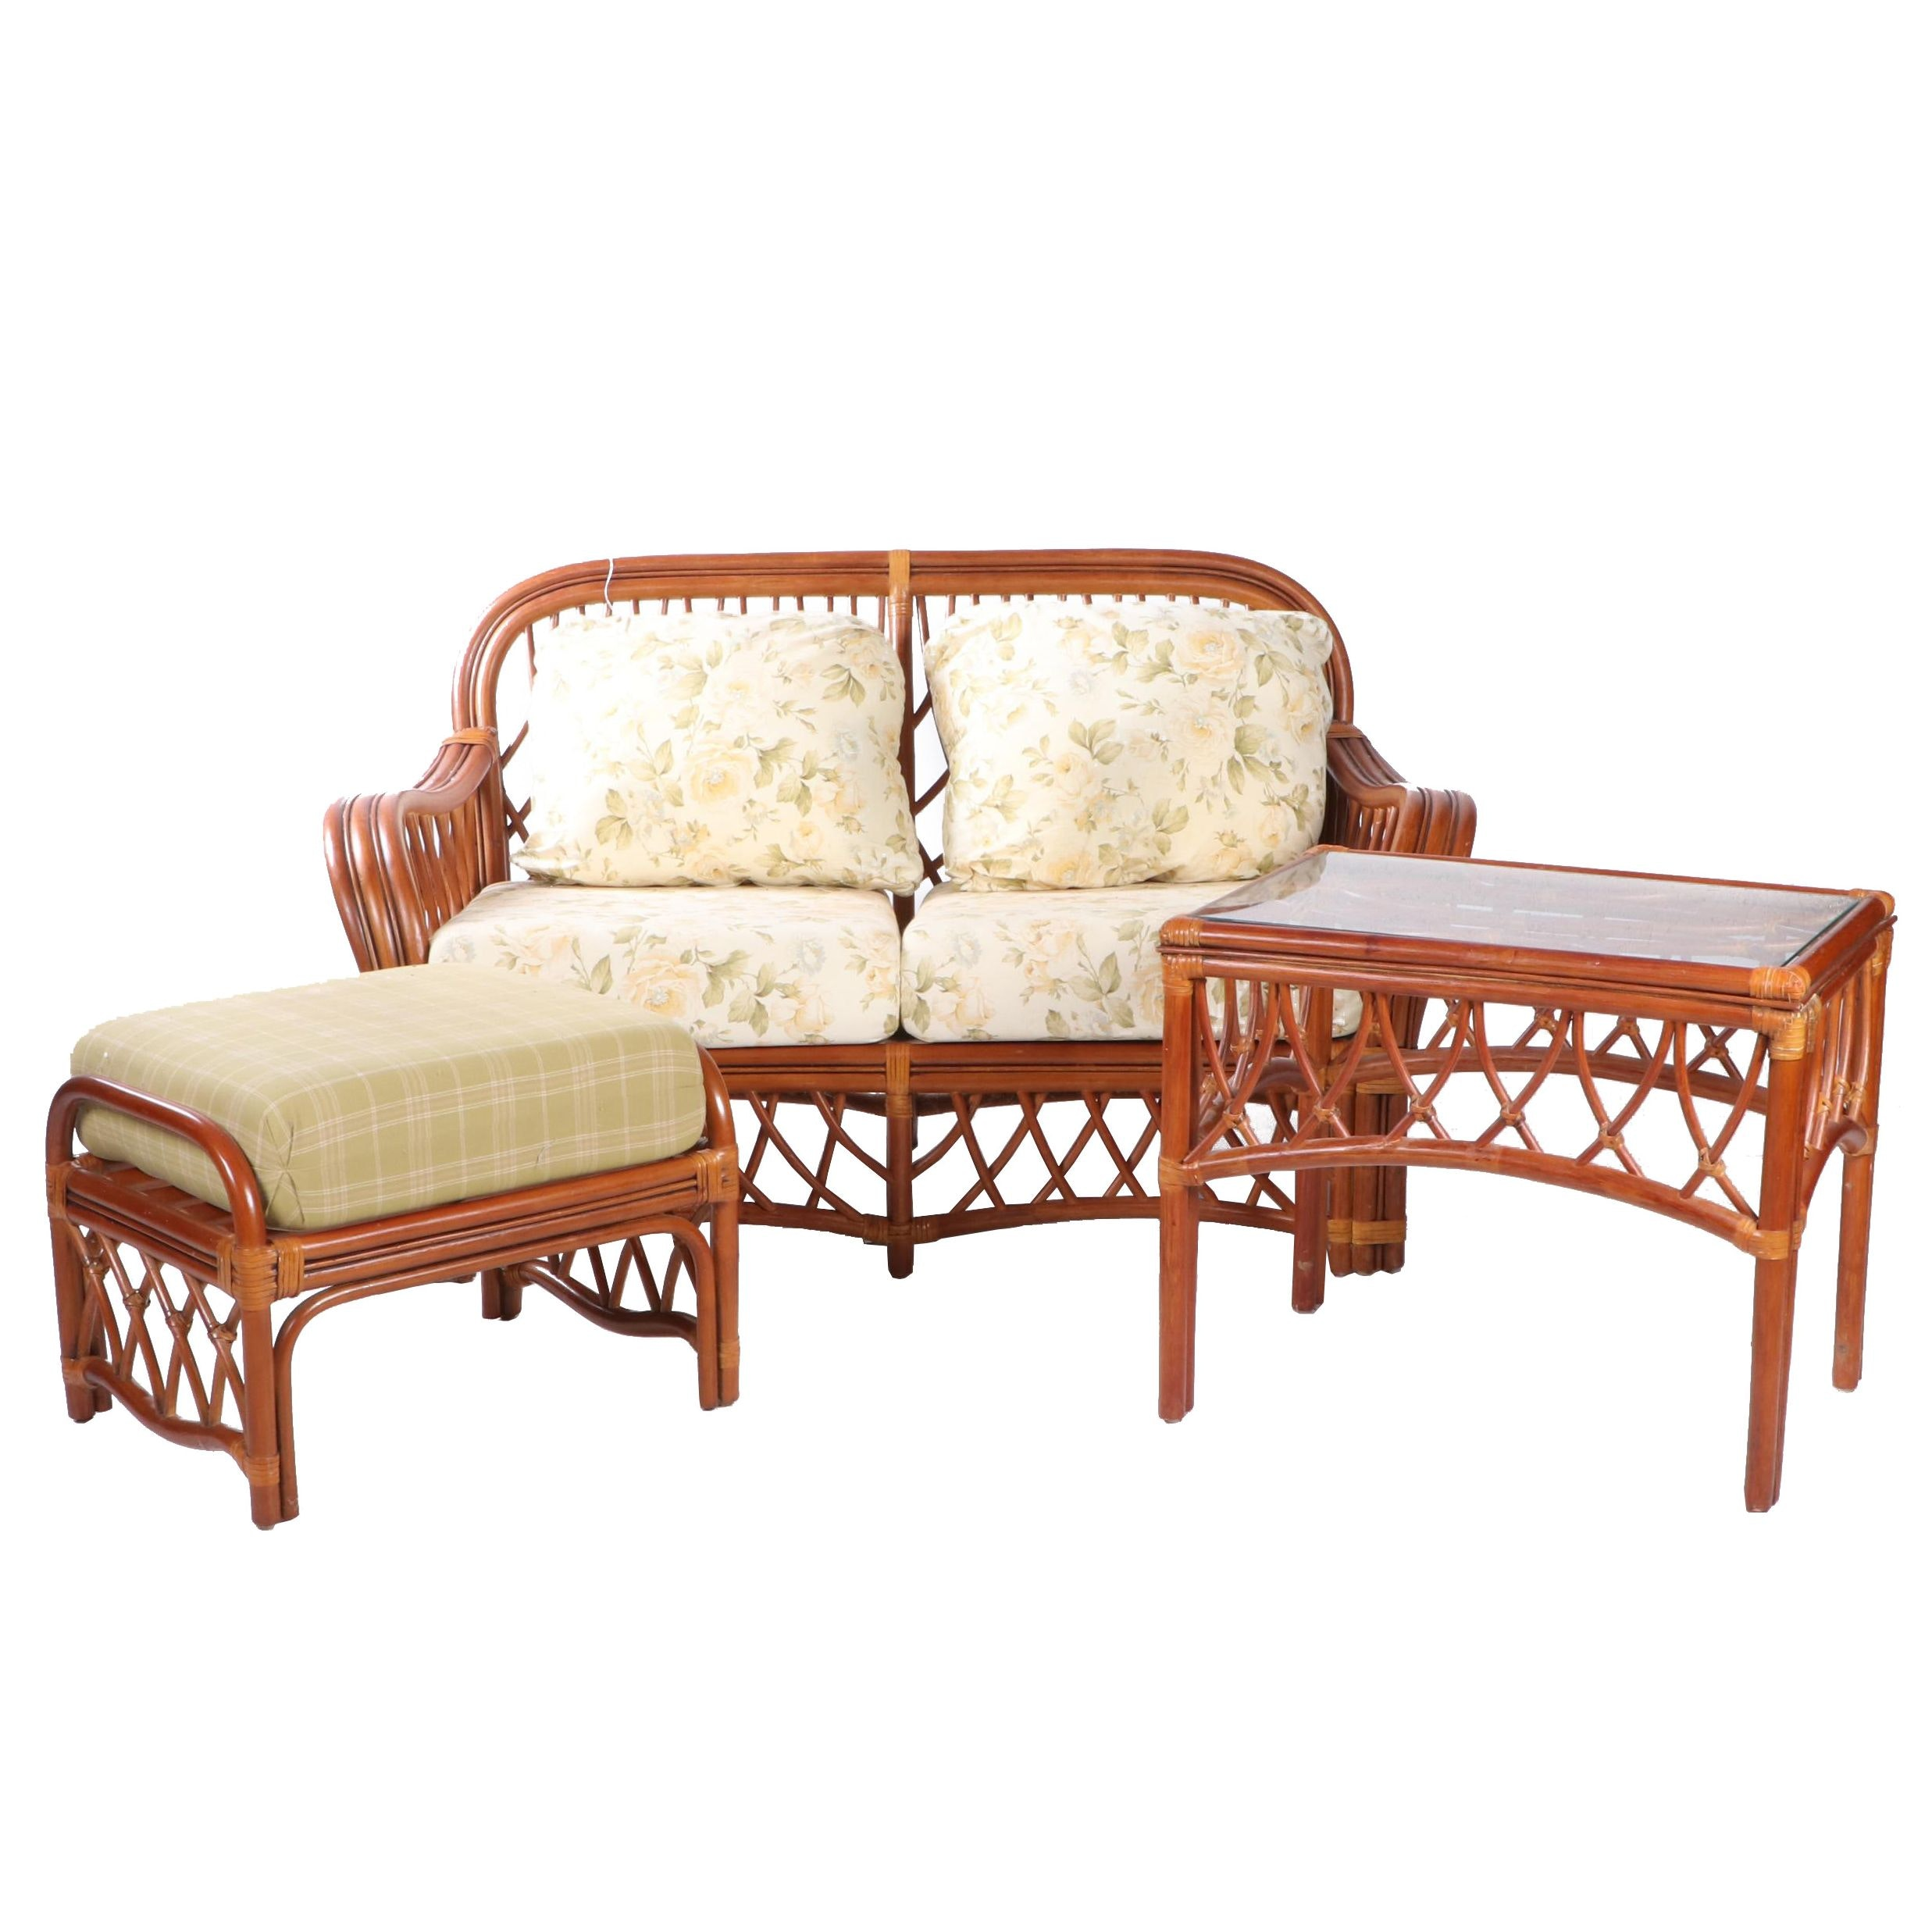 Rattan Loveseat, Ottoman, and Side Table